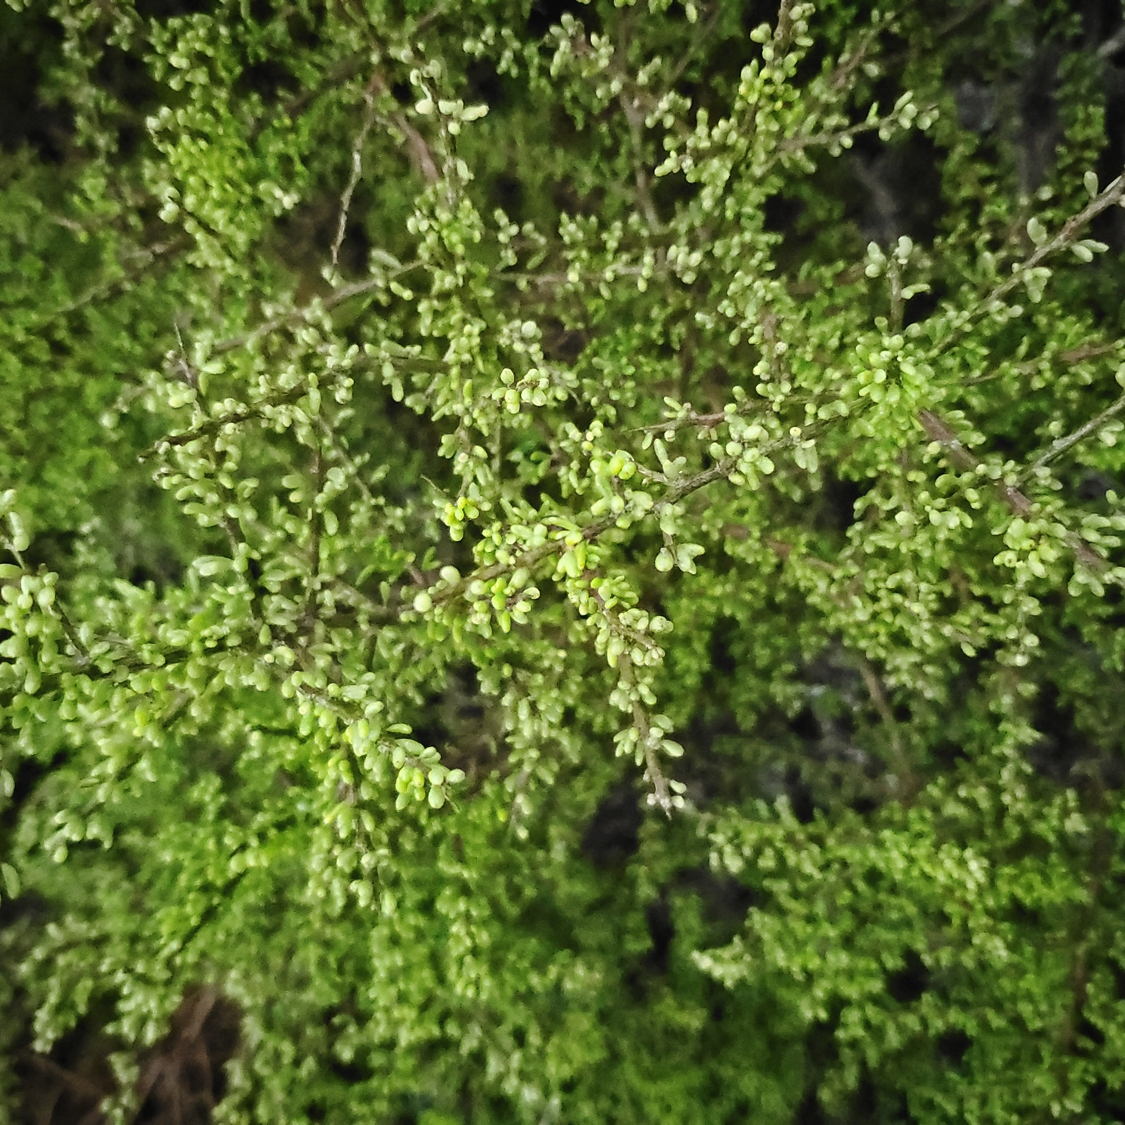 Sparse leaves on a California boxthorn